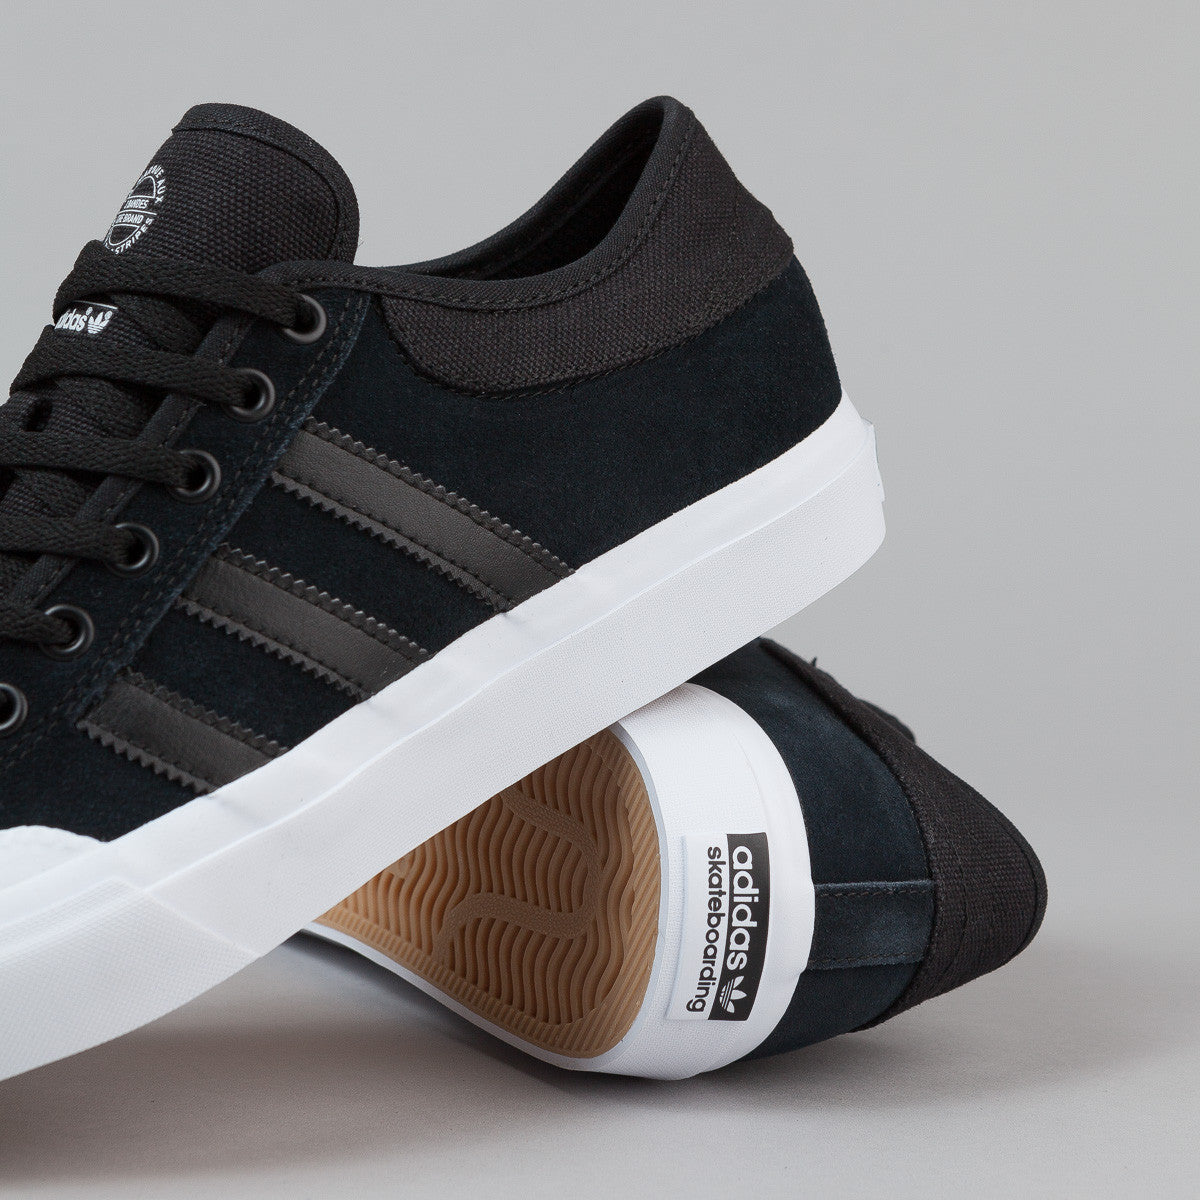 Adidas Matchcourt Shoes - Core Black / Core Black / FTW White